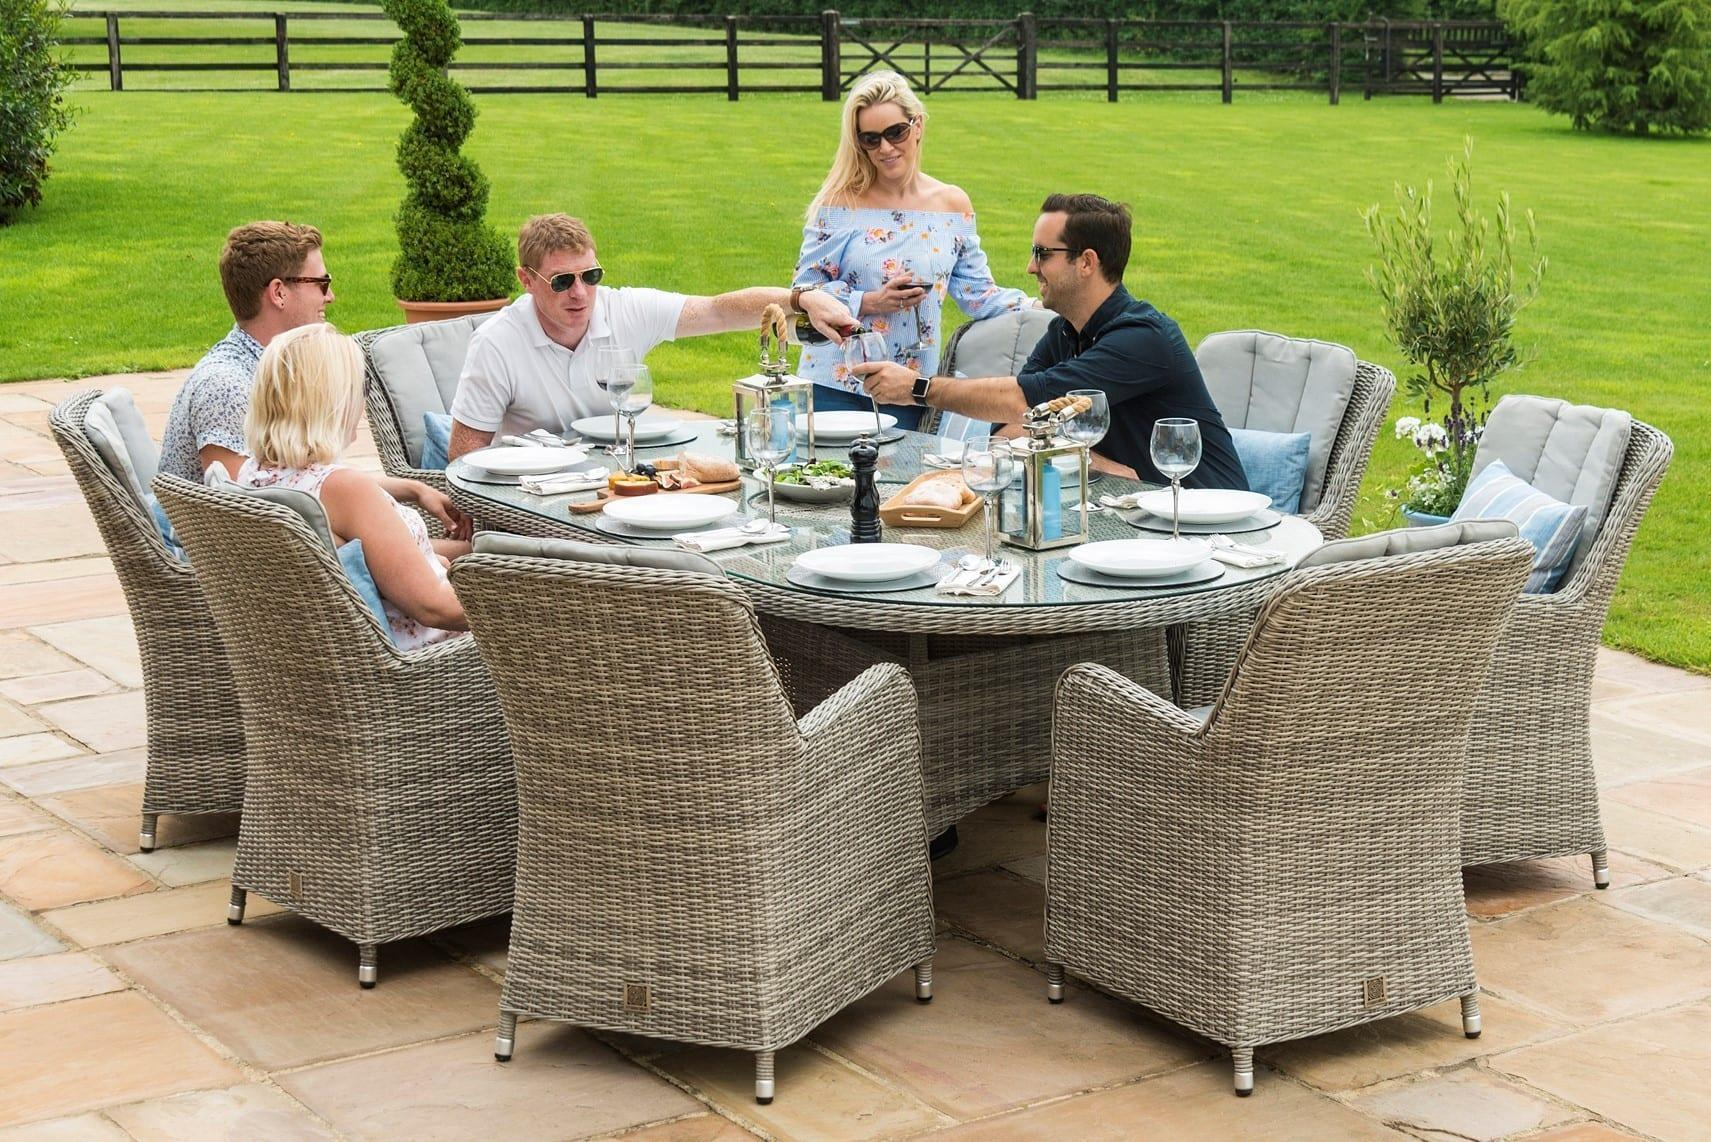 Outstanding Oxford 8 Seat Oval Garden Dining Table Set Inset Ice Bucket Umbrella Grey Synthetic Rattan Onthecornerstone Fun Painted Chair Ideas Images Onthecornerstoneorg